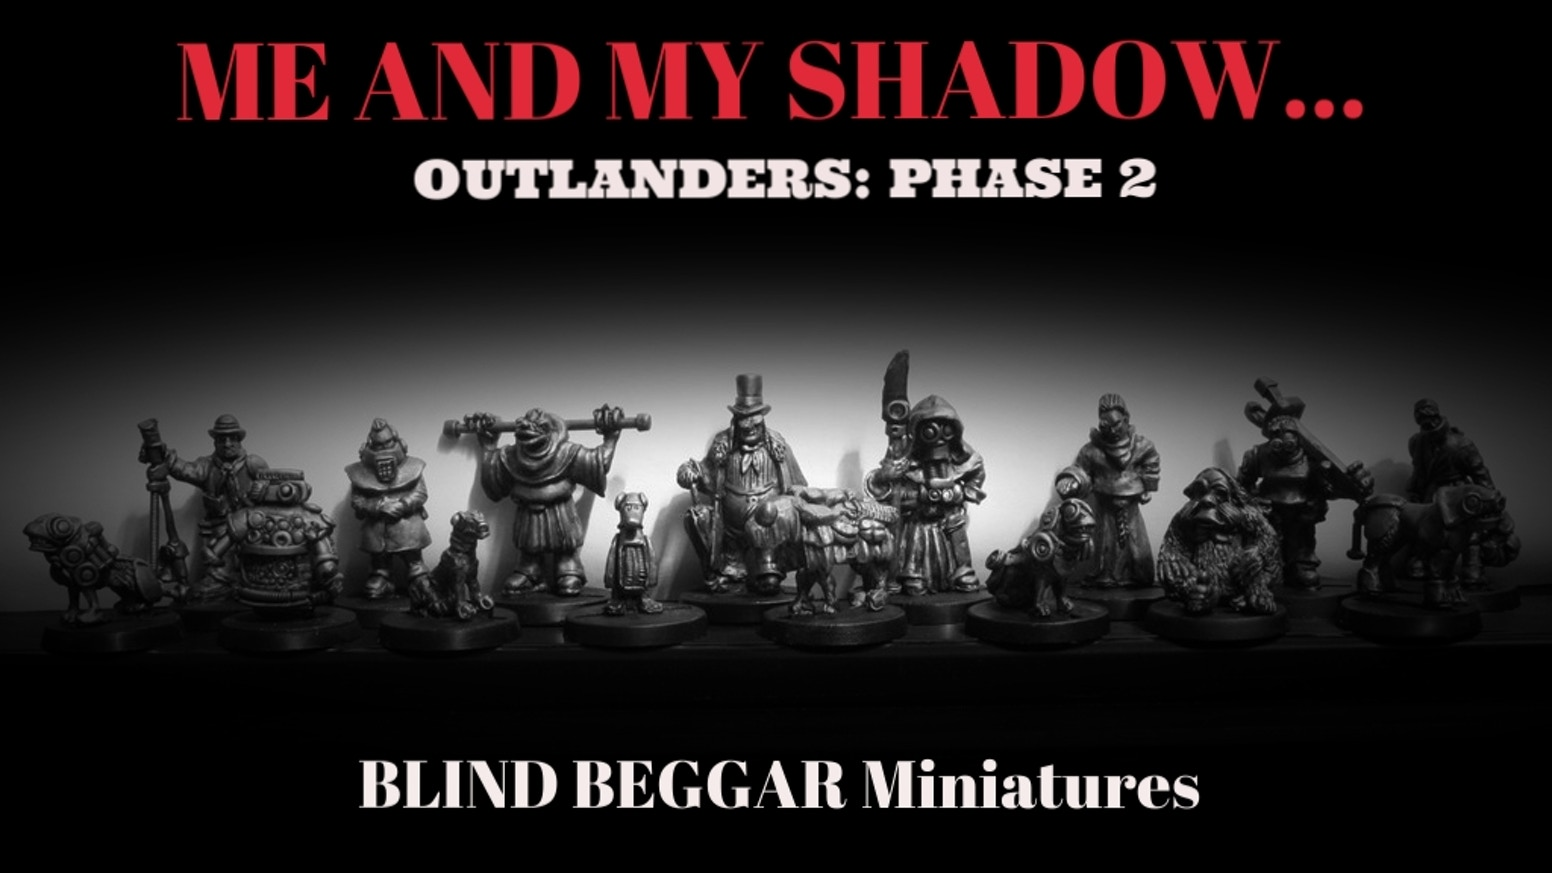 Sci-Fi characters and their sidekicks.If you missed out on this campaign and want to get hold of some it is not too late. Just go to: blindbeggarminiatures.co.uk to see the entire range of what the Beggar has to offer.